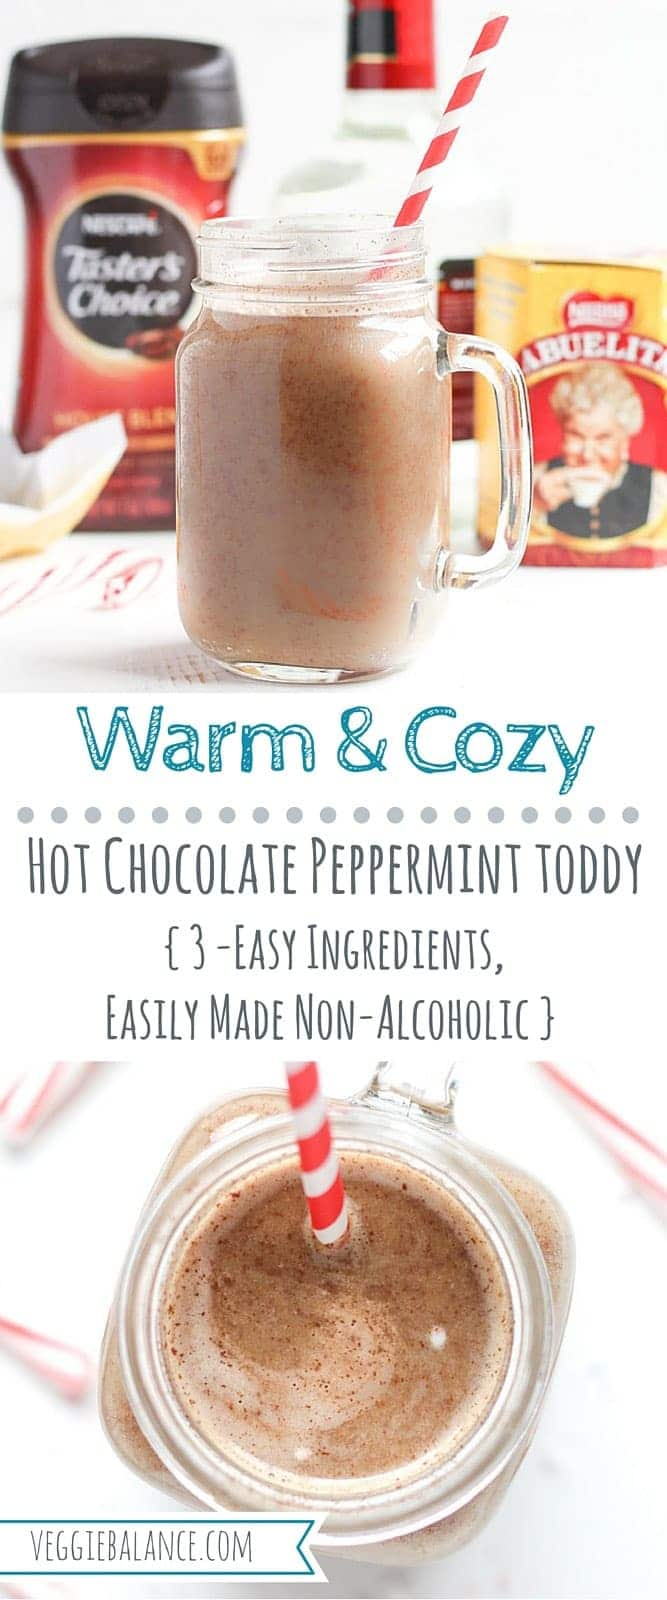 Hot Chocolate Toddy with Peppermint - Veggiebalance.com